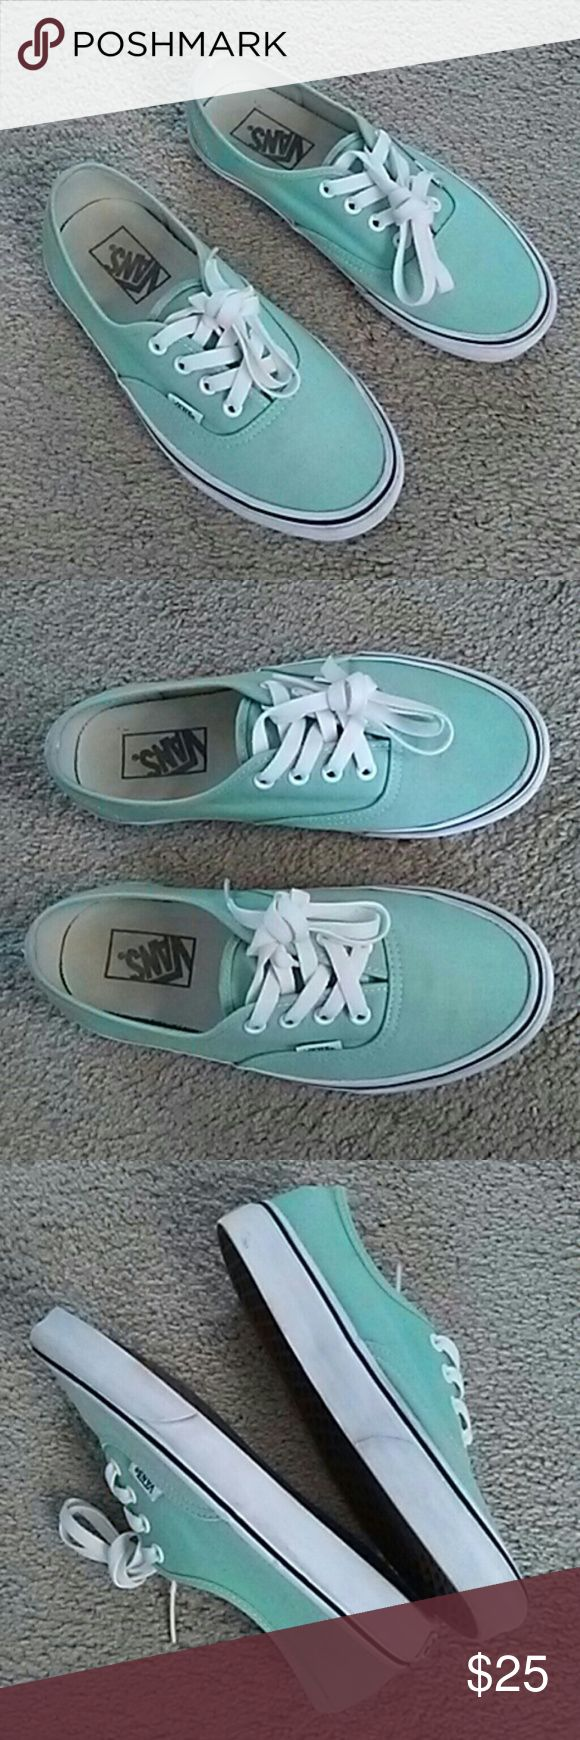 Vans. Mint Green Lace Up Sneakers Unisex Mint green lace up sneakers Men's 5.5 and Women's 7. In gently used, Excellent Condition. Vans Shoes Sneakers